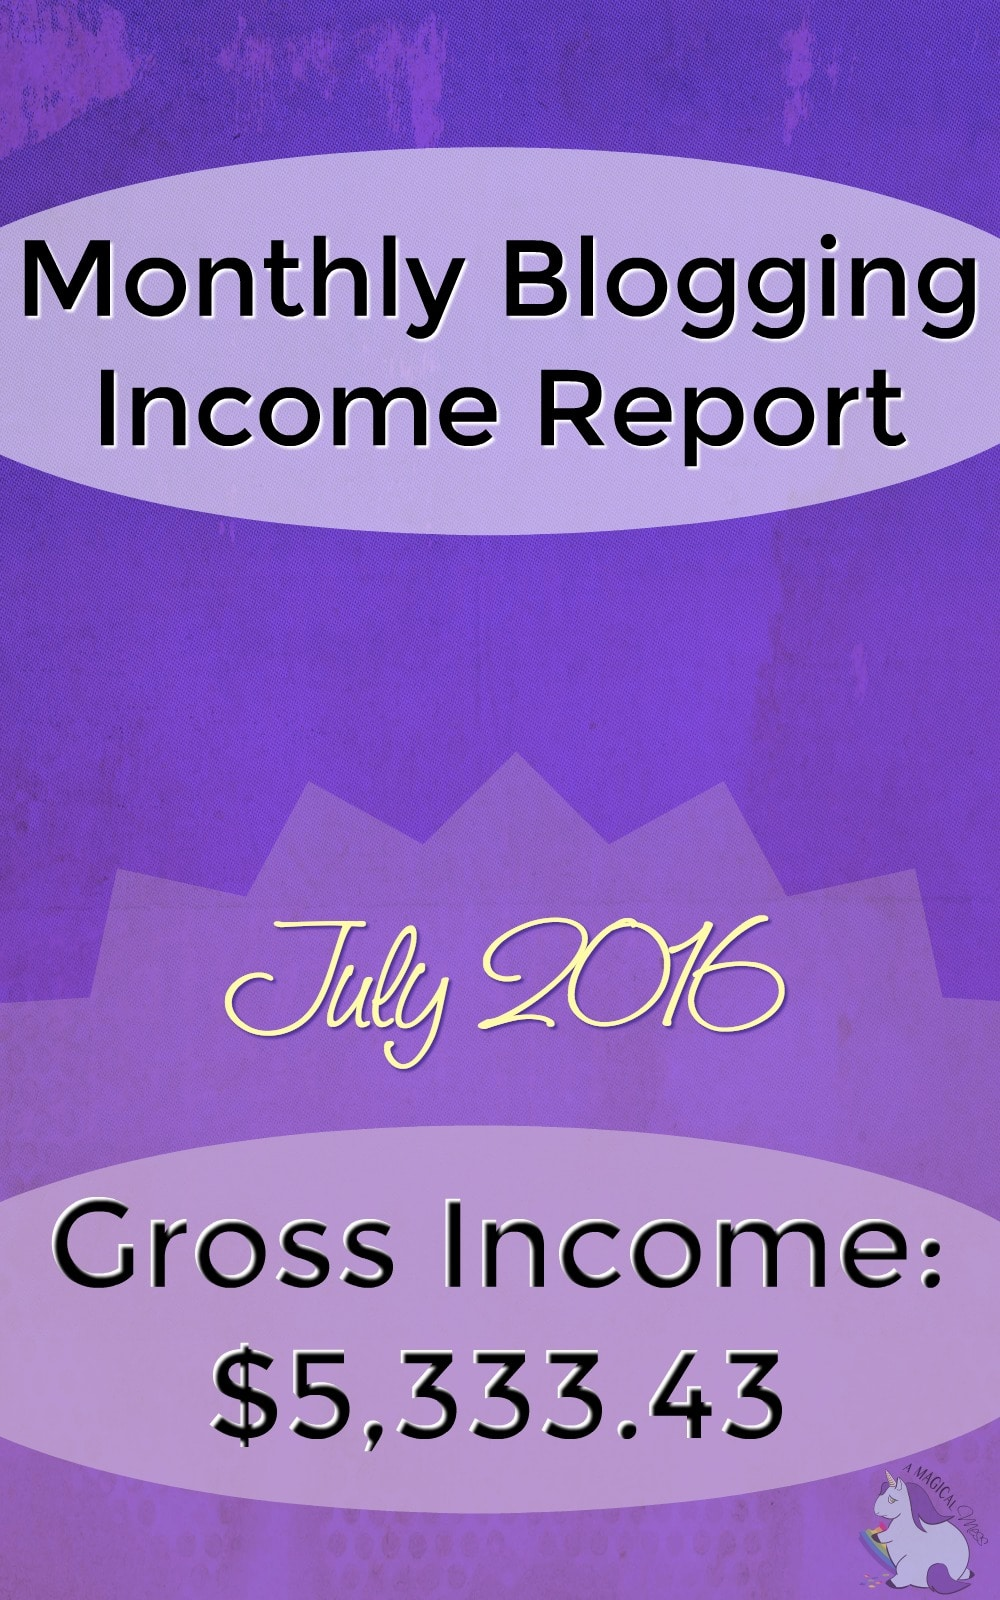 Monthly Blogging Income Report - July 2016